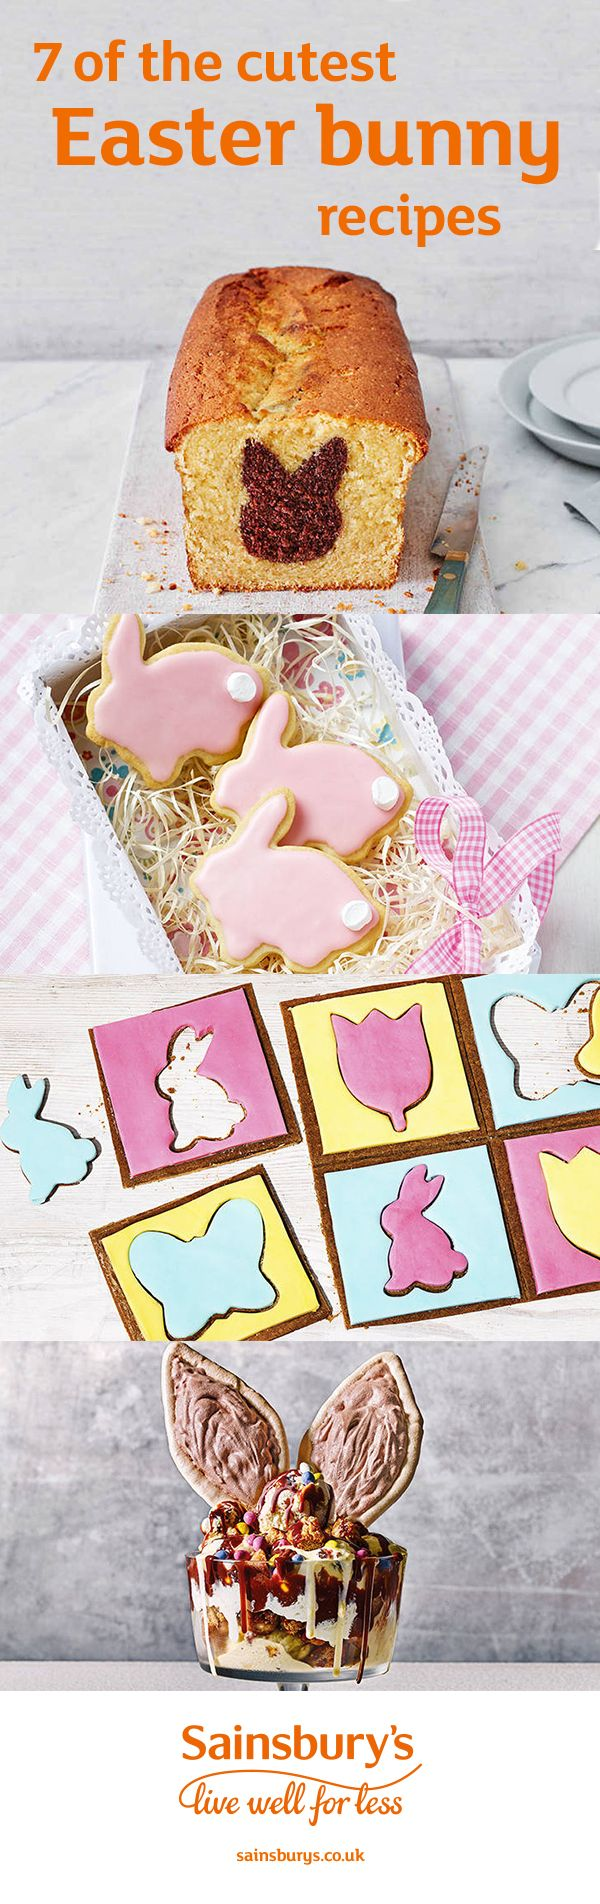 Make your Easter weekend extra special with adorable bunny-shaped treats. A scoop of indulgent hot cross bunny ice cream sundae is a great way to use up leftover hot cross buns, or you could surprise the family with a hidden Easter bunny loaf. Instead of a traditional Easter egg hunt, try our irresistible gingerbread biscuit puzzle. We've also got Easter bunny cookies, chocolate Easter nest cupcakes and chocolate carrots.